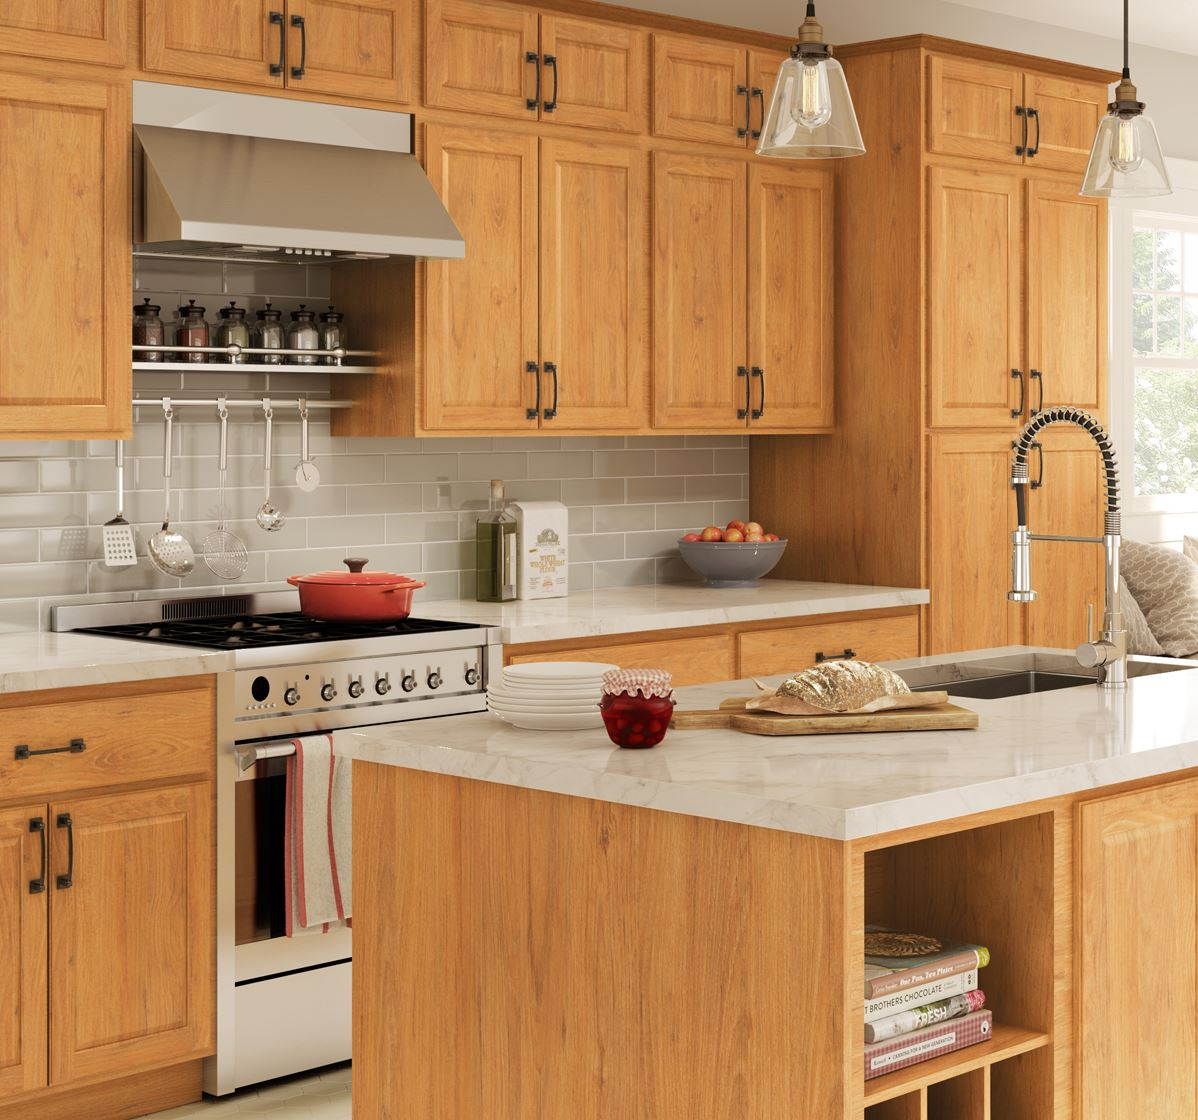 Kitchen Cabinets: Madison Base Cabinets In Medium Oak